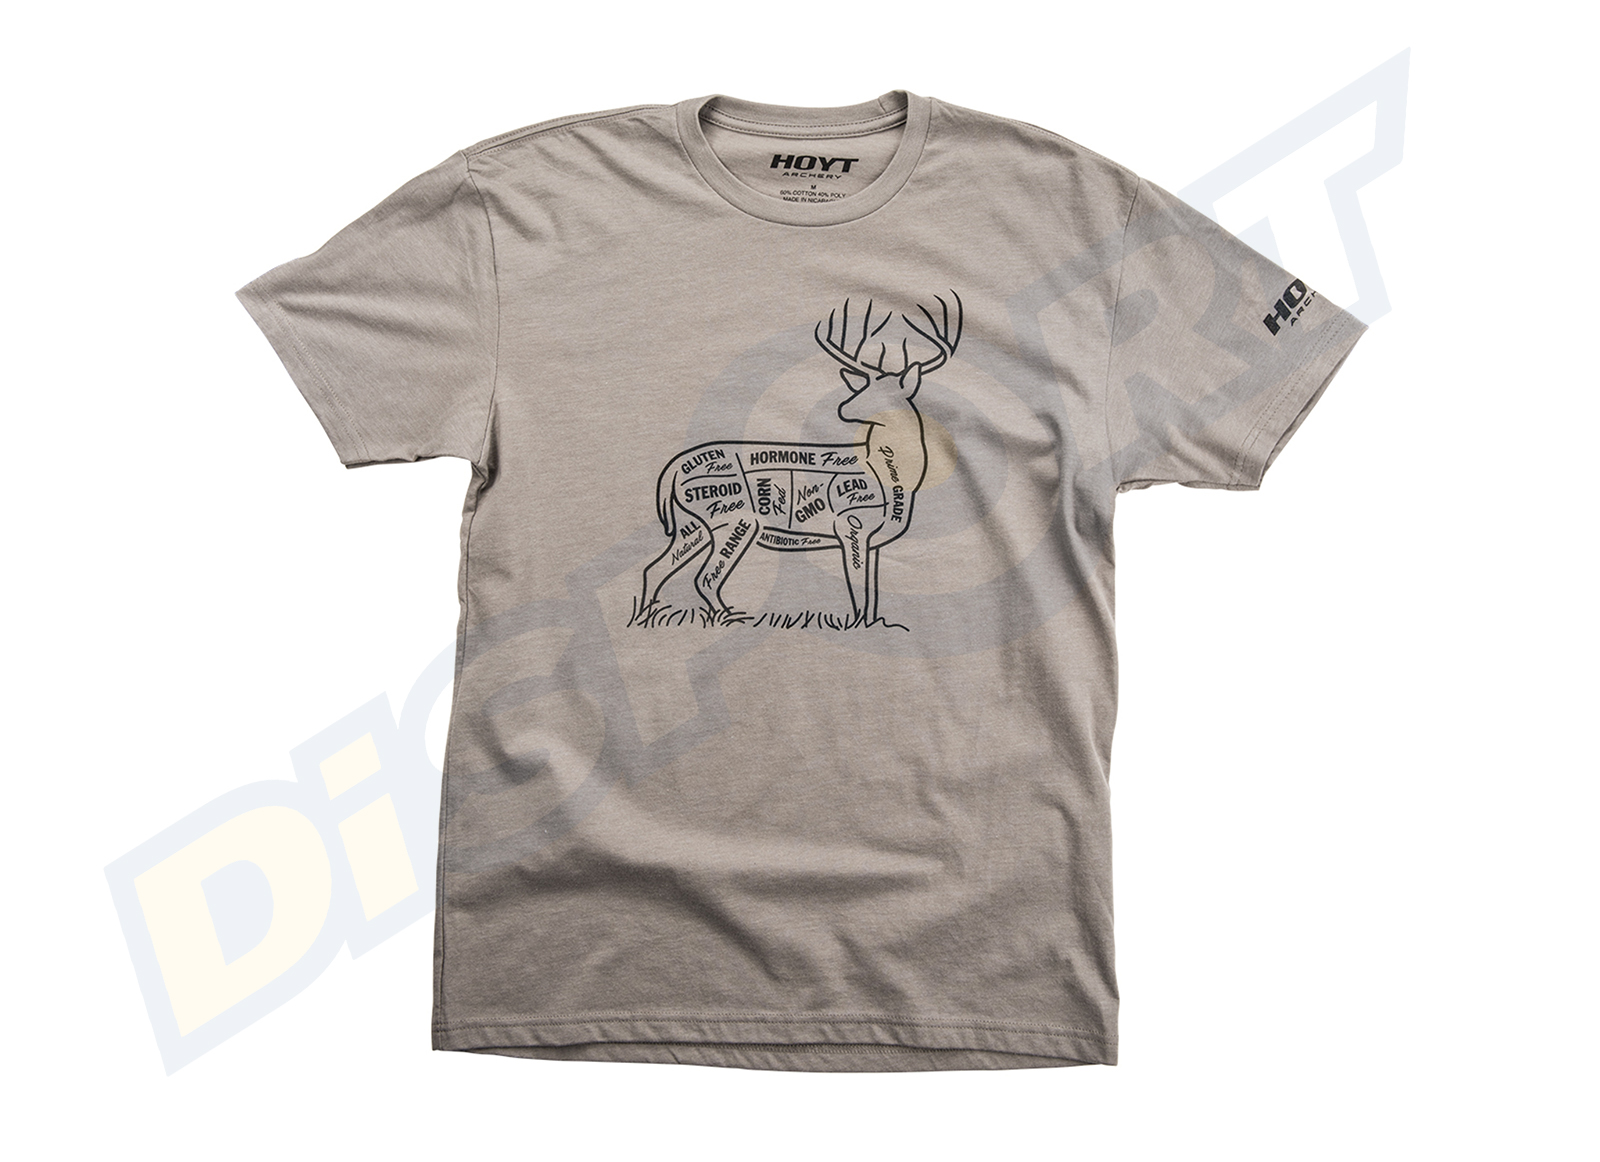 HOYT T-SHIRT UOMO CORN FED FREE RANGE